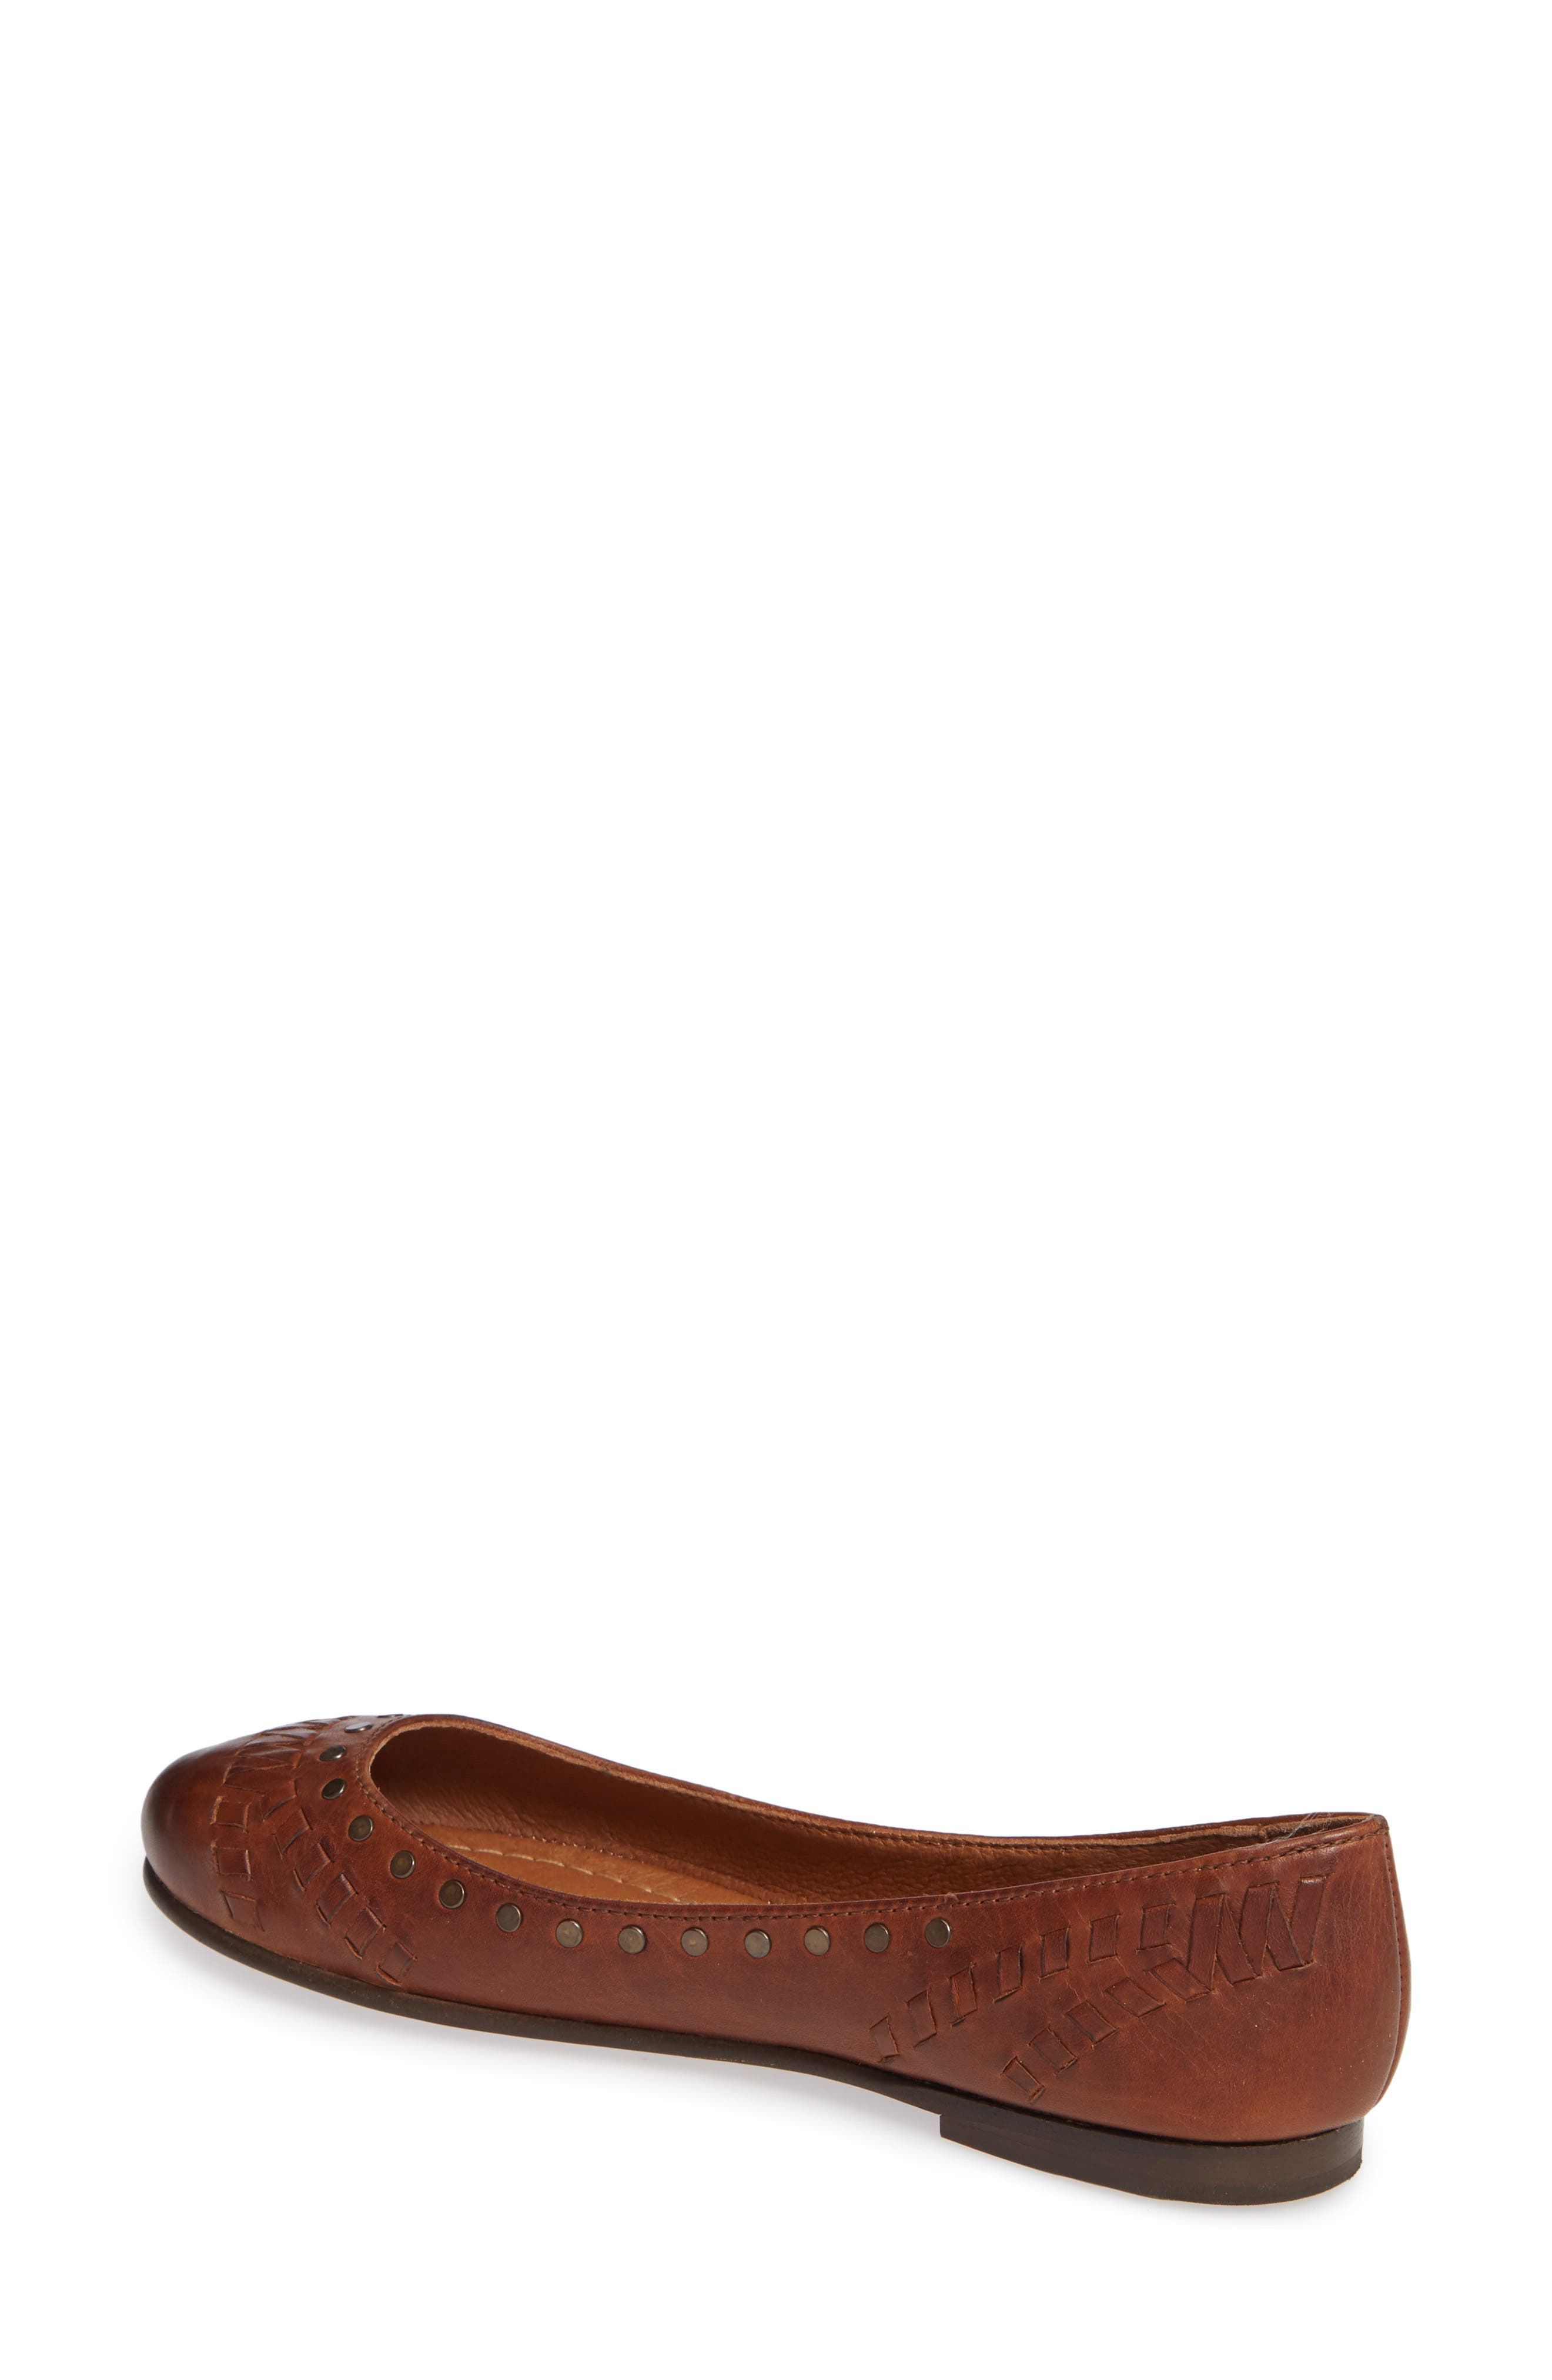 Carson Whipstitch Ballet Flat,                             Alternate thumbnail 2, color,                             COGNAC LEATHER